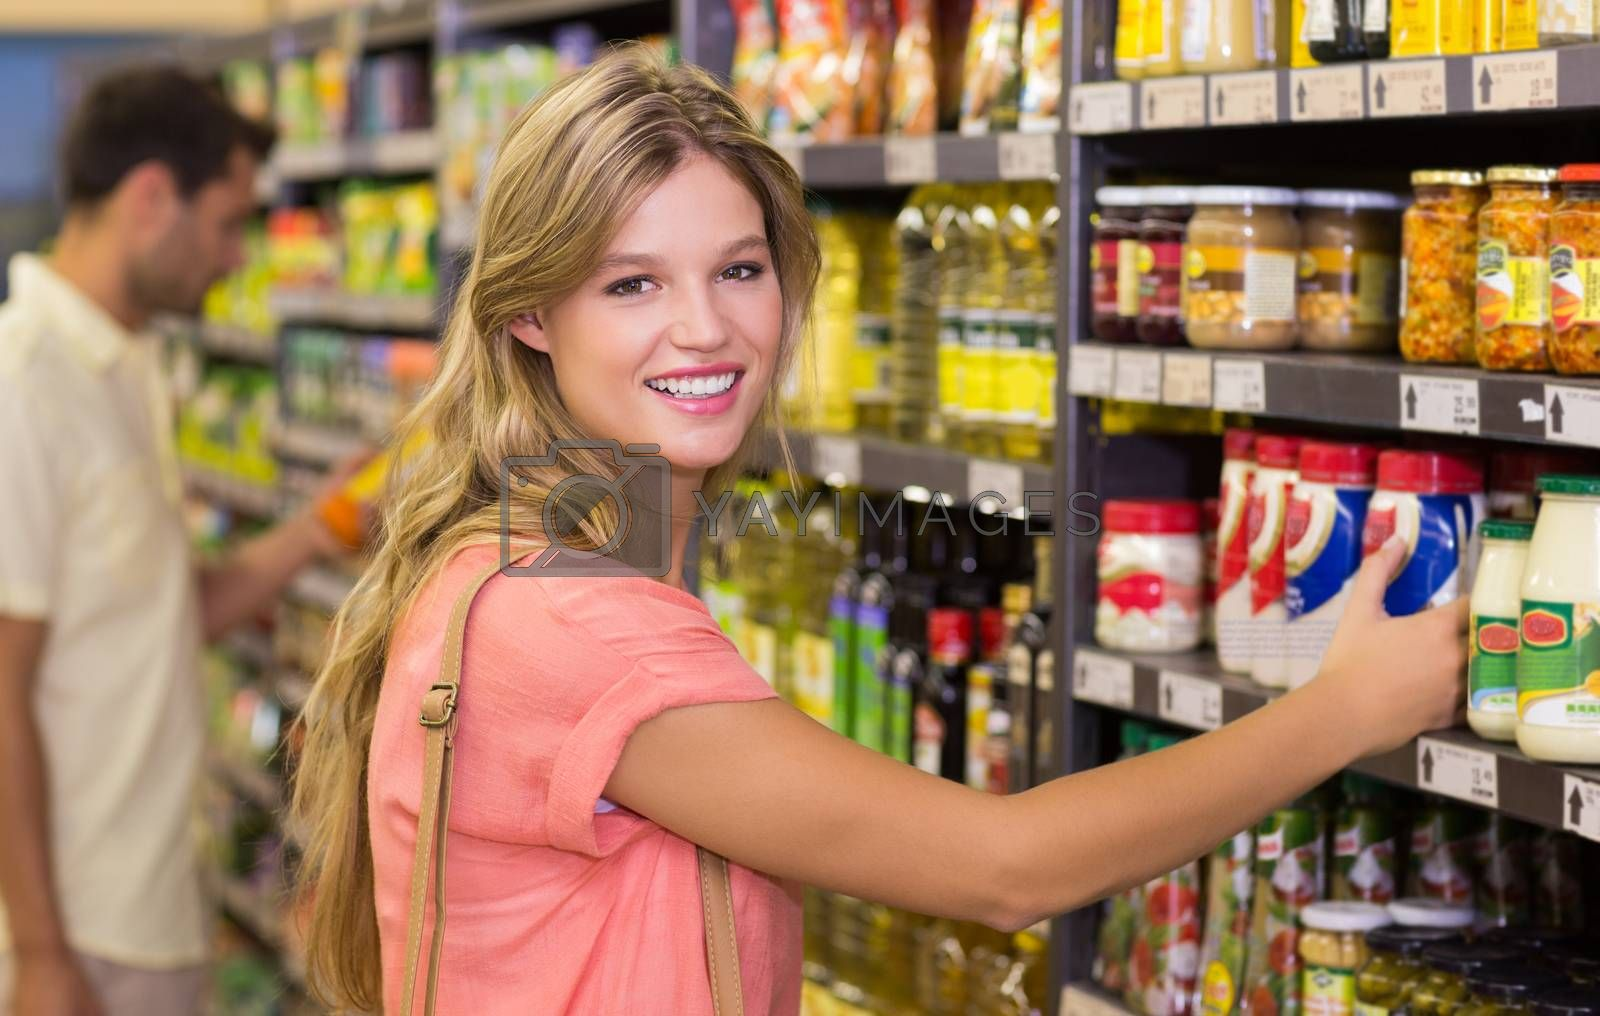 Royalty free image of Portrait of a pretty blonde woman buying food products  by Wavebreakmedia